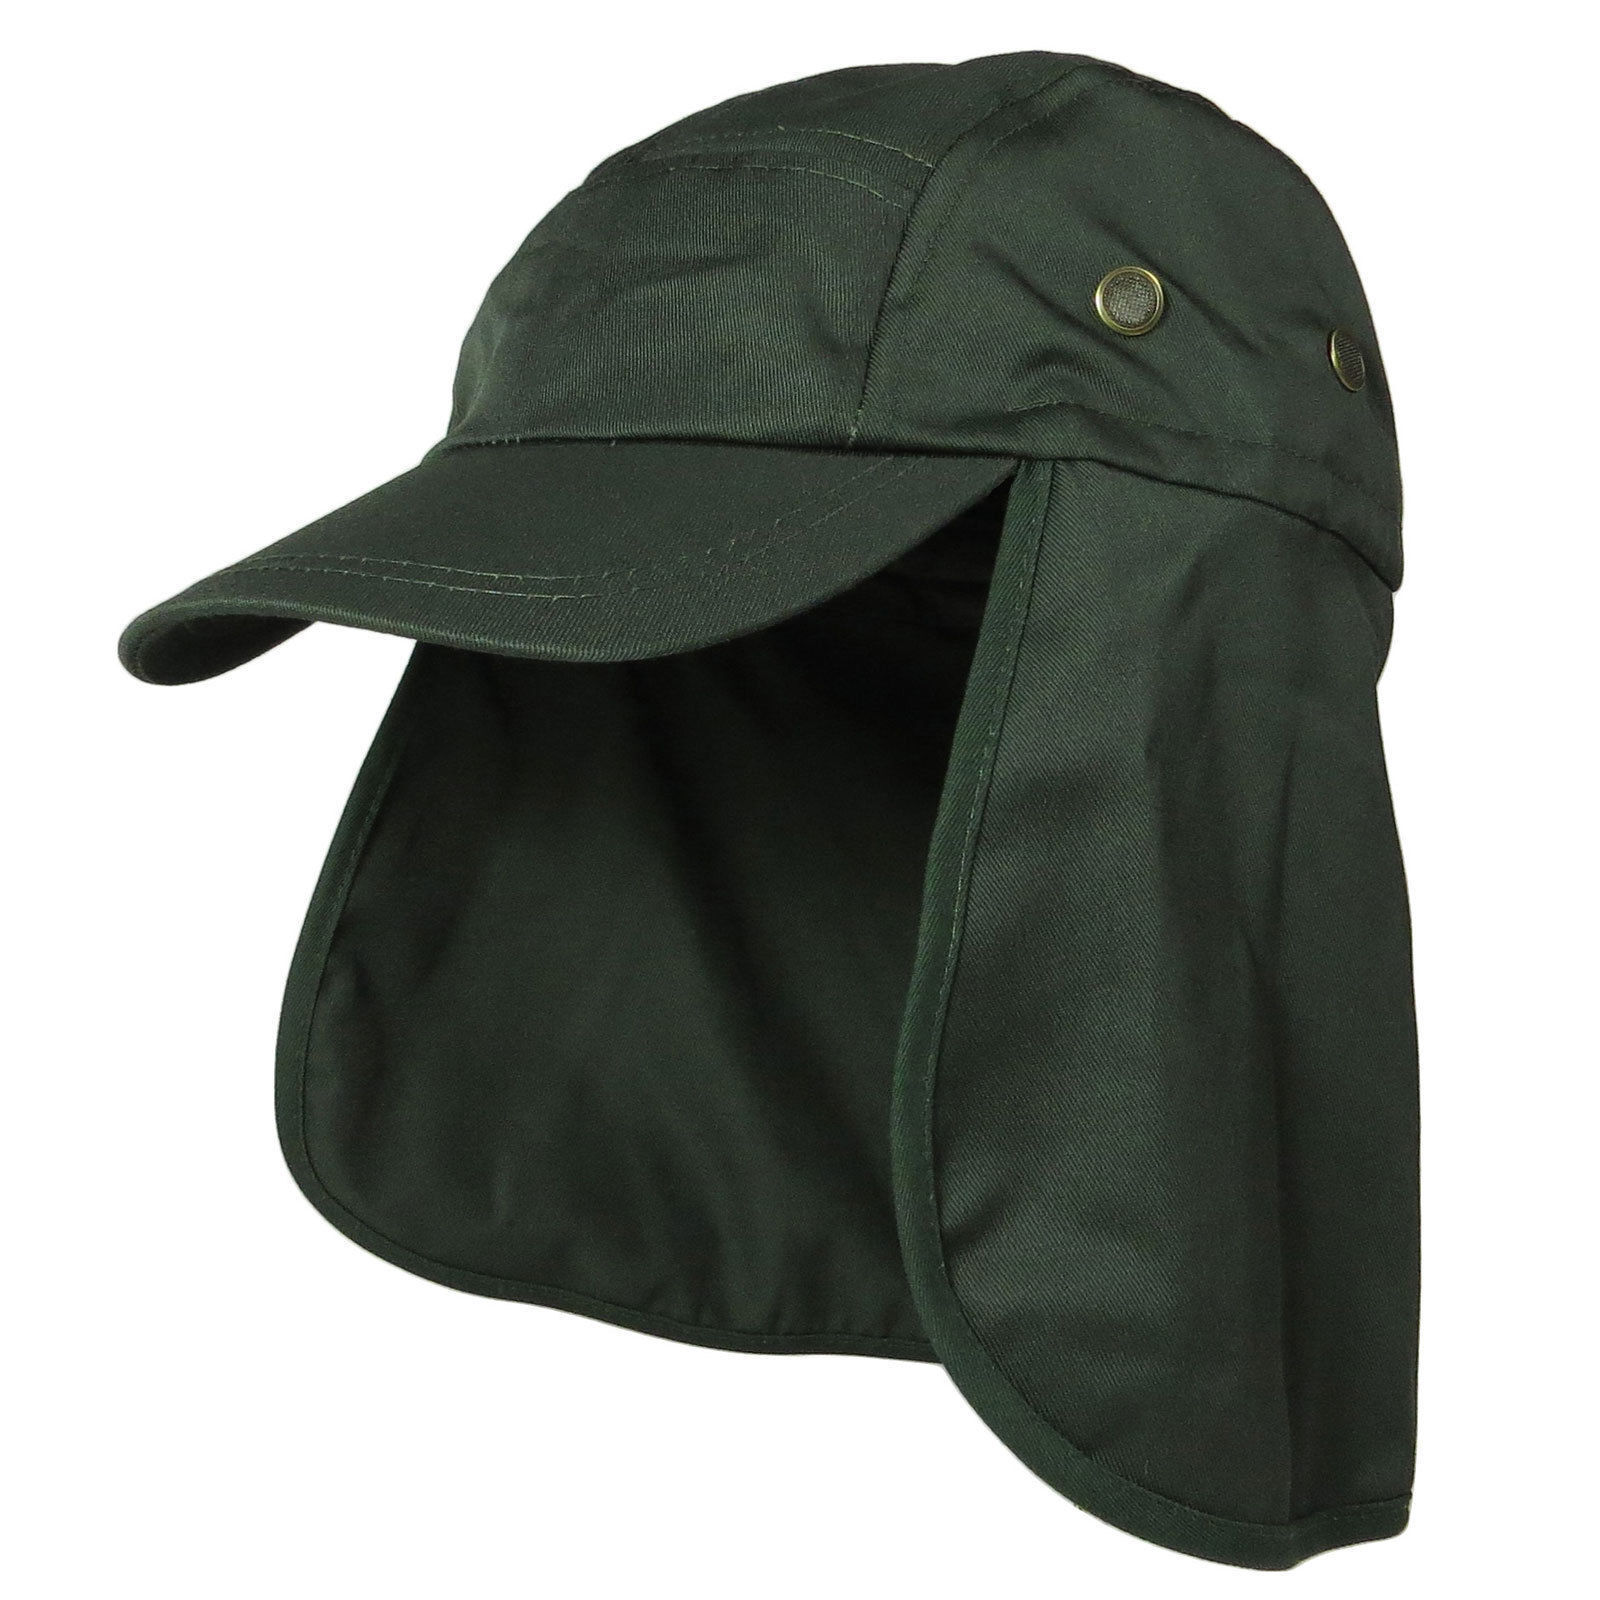 25158d11c26 Buy Baseball Cap Camping Boonie Fishing Ear Flap Sun Neck Cover Visor Camo  Army Hat at online store